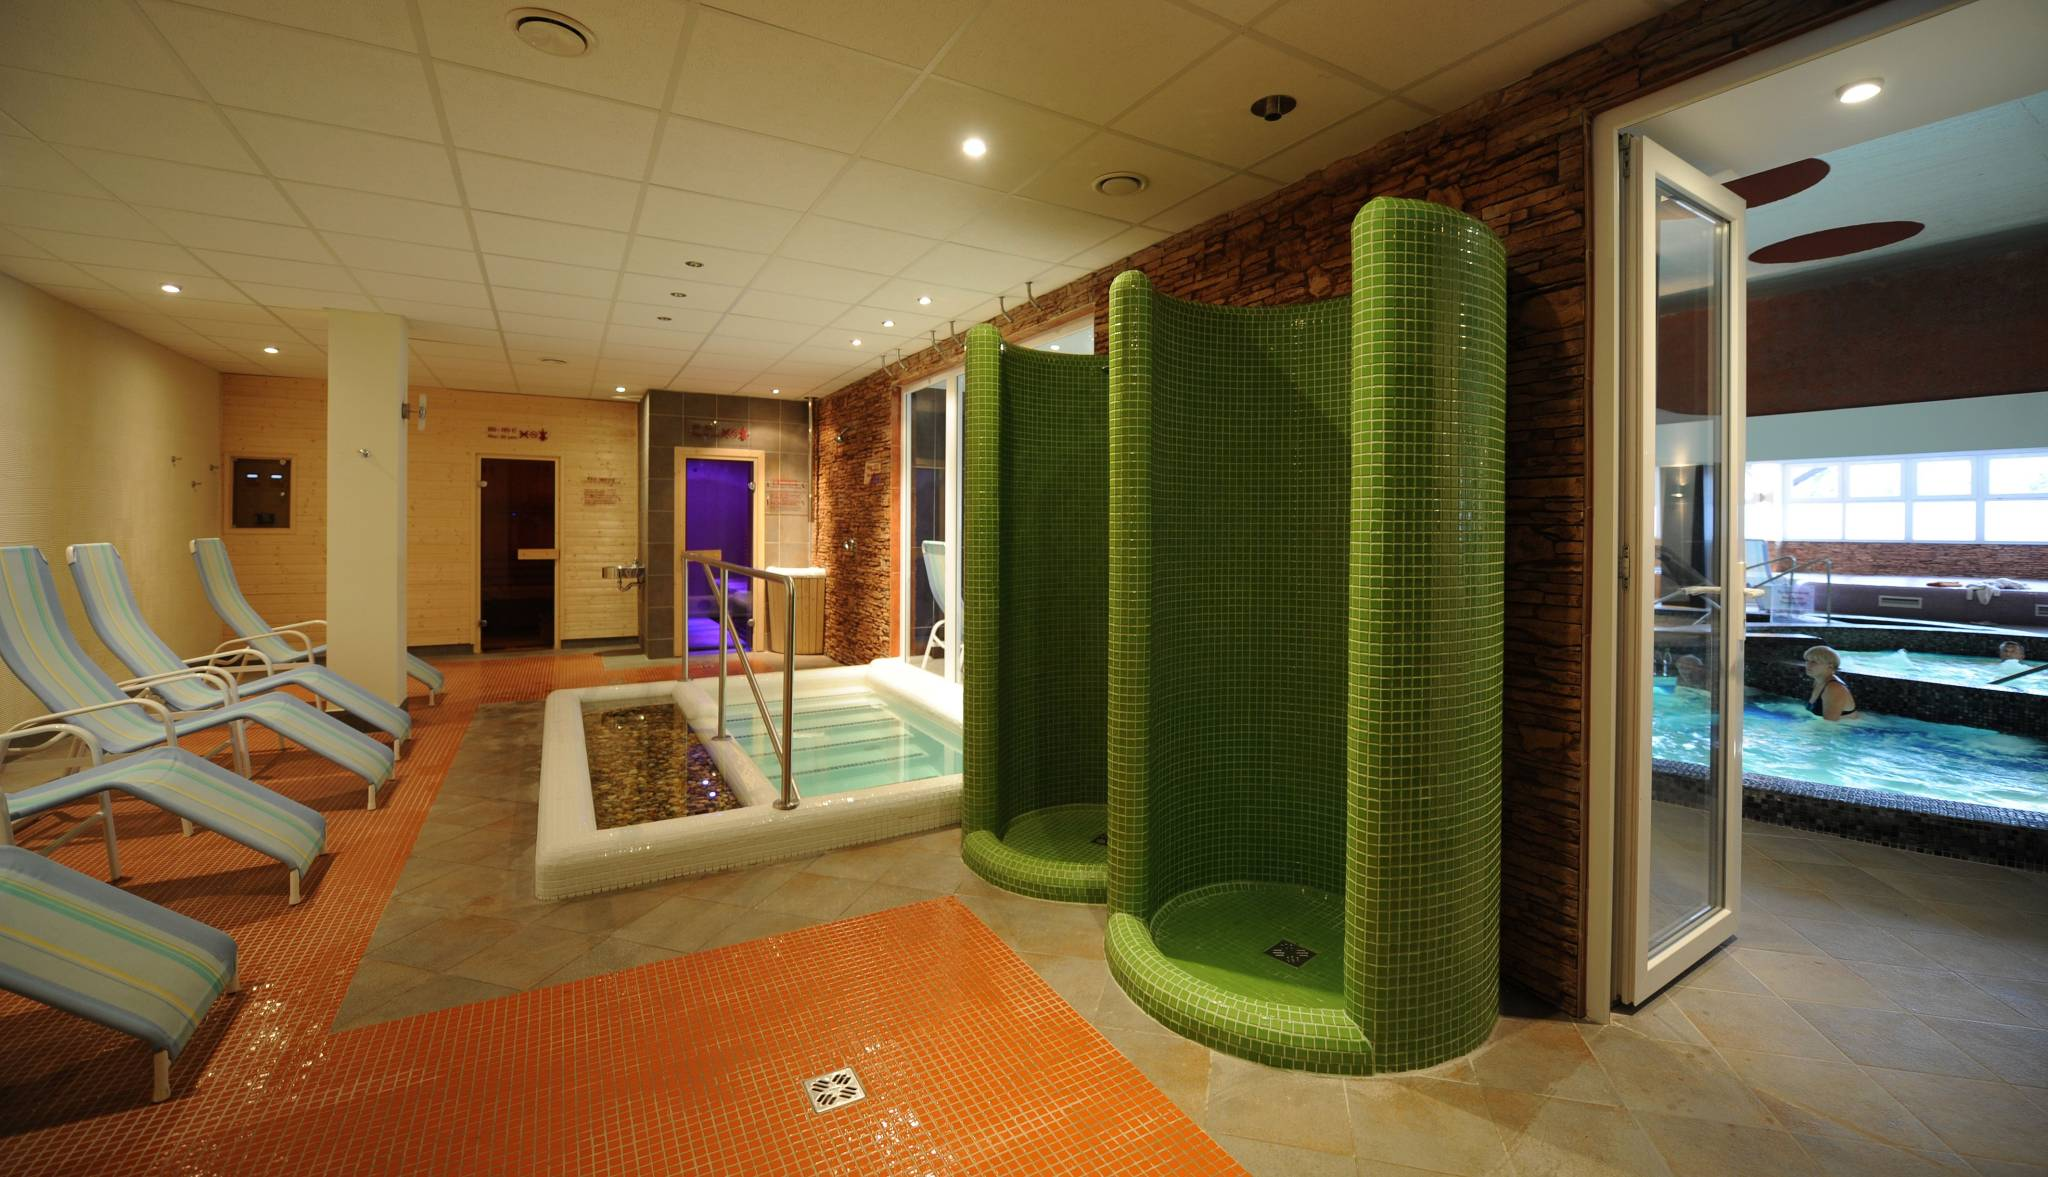 Hunguest Hotel Flóra Eger - Wellness sziget